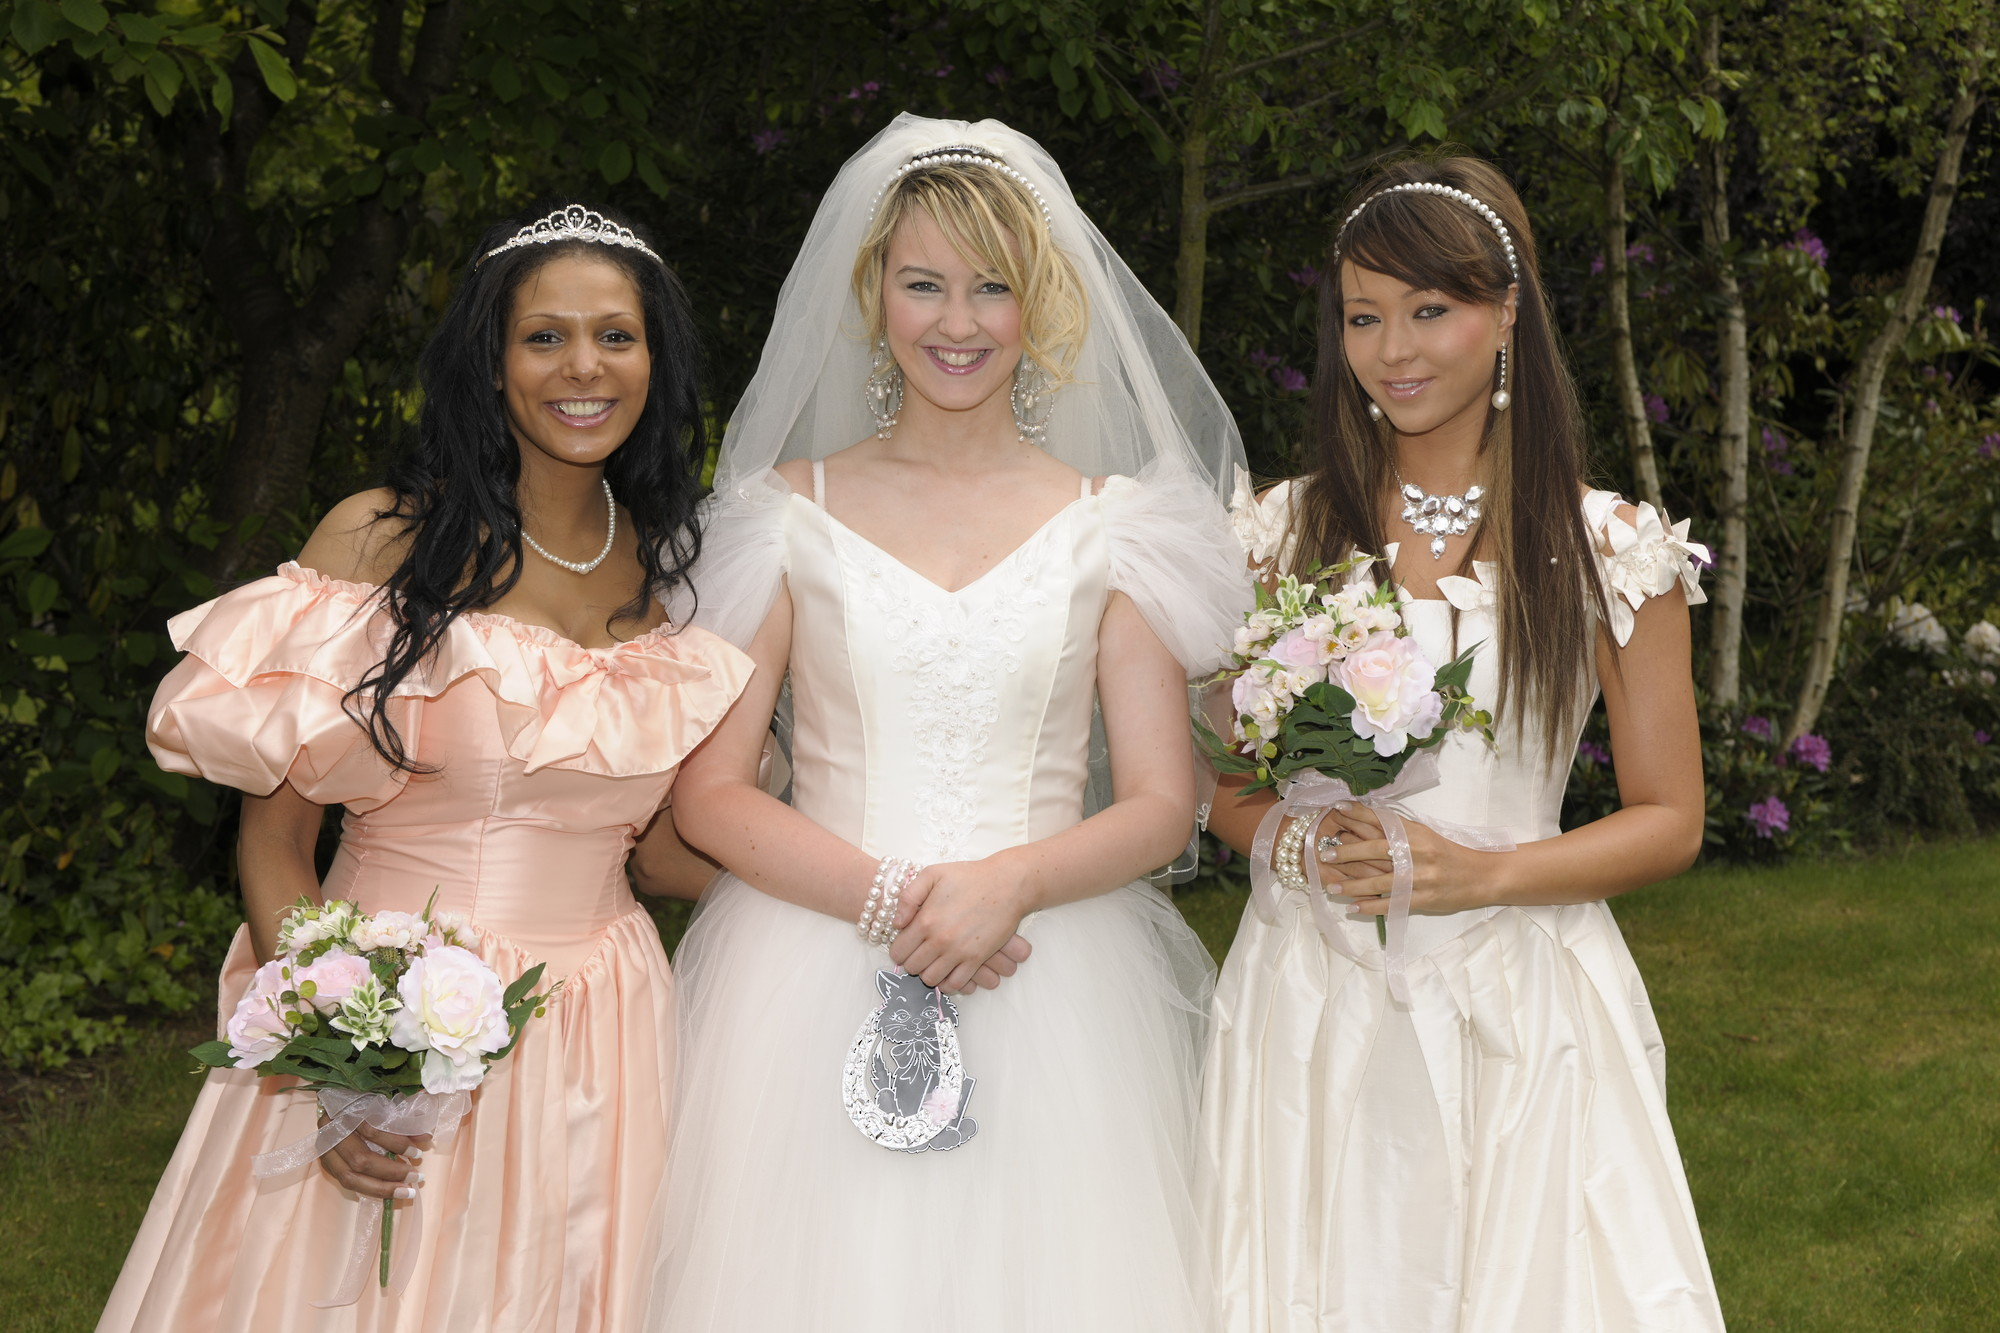 Examining dominican brides learn how to meet brides girls for marriage